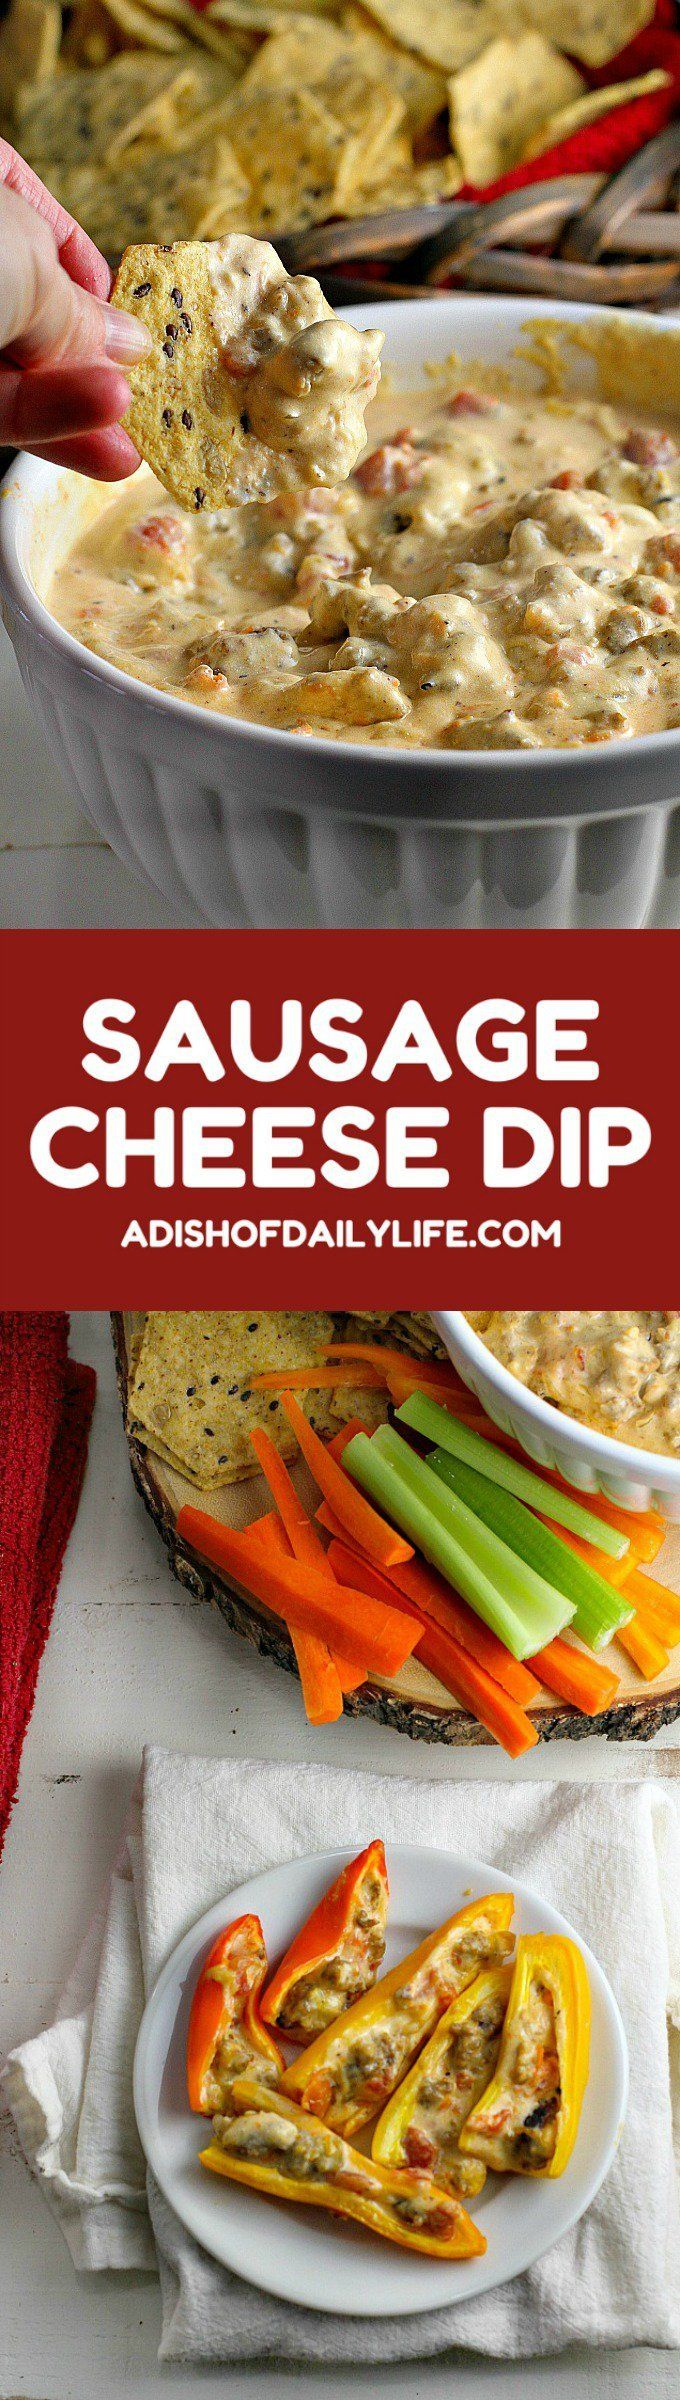 This Crock Pot Sausage Cheese Dip is an easy-to-make crowd pleaser for game day! Only minutes of prep work, then throw all your ingredients in the slow cooker for an hour. Great with chips and veggies!